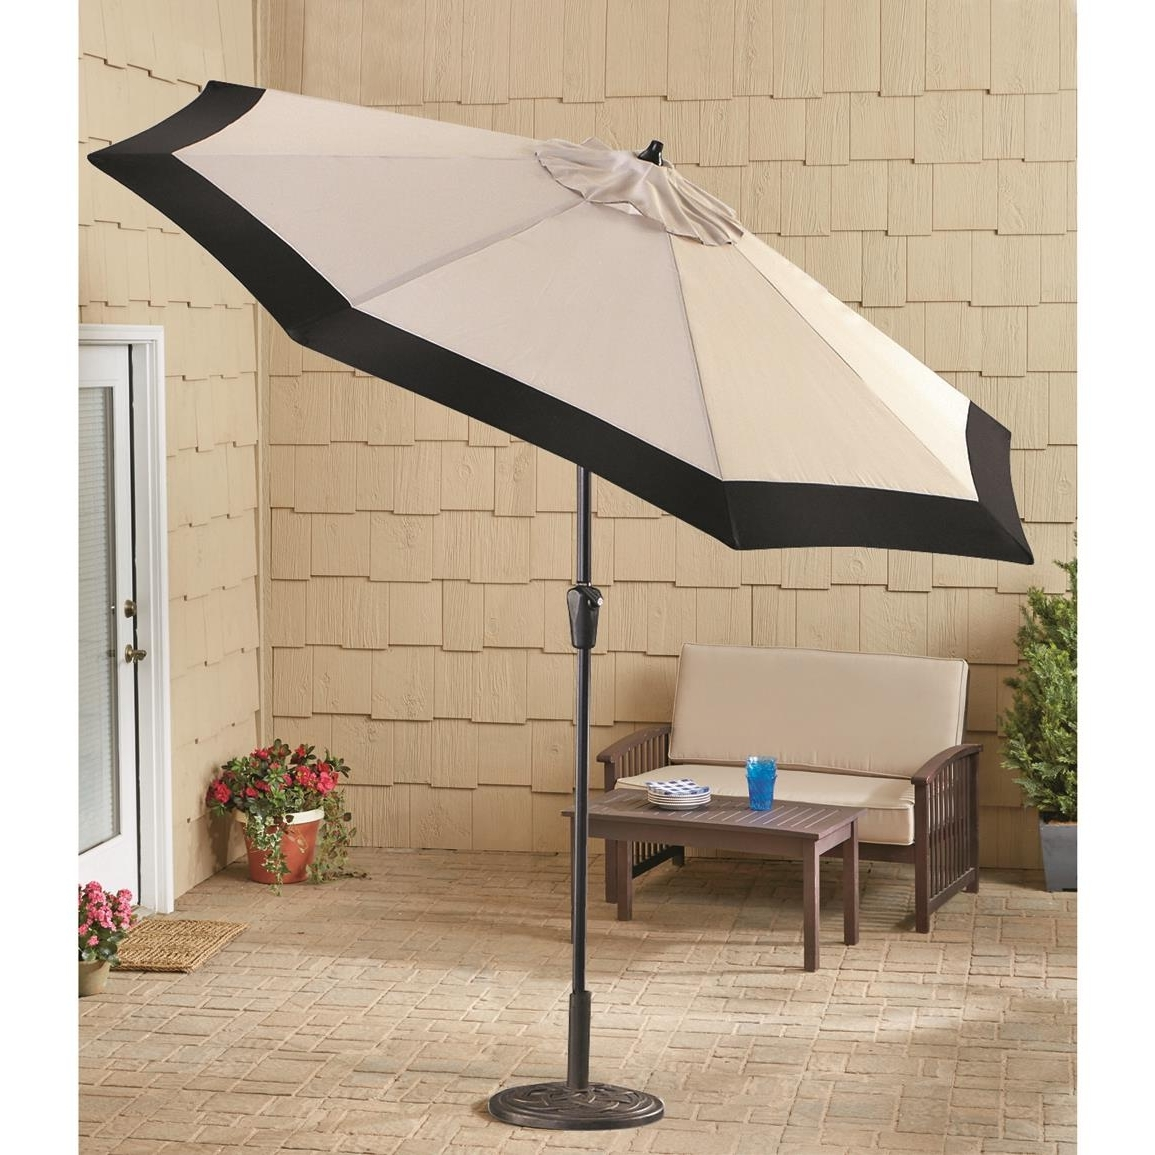 Well Known Castlecreek 9' Two Tone Deluxe Market Patio Umbrella, Khaki / Black With Deluxe Patio Umbrellas (View 16 of 20)